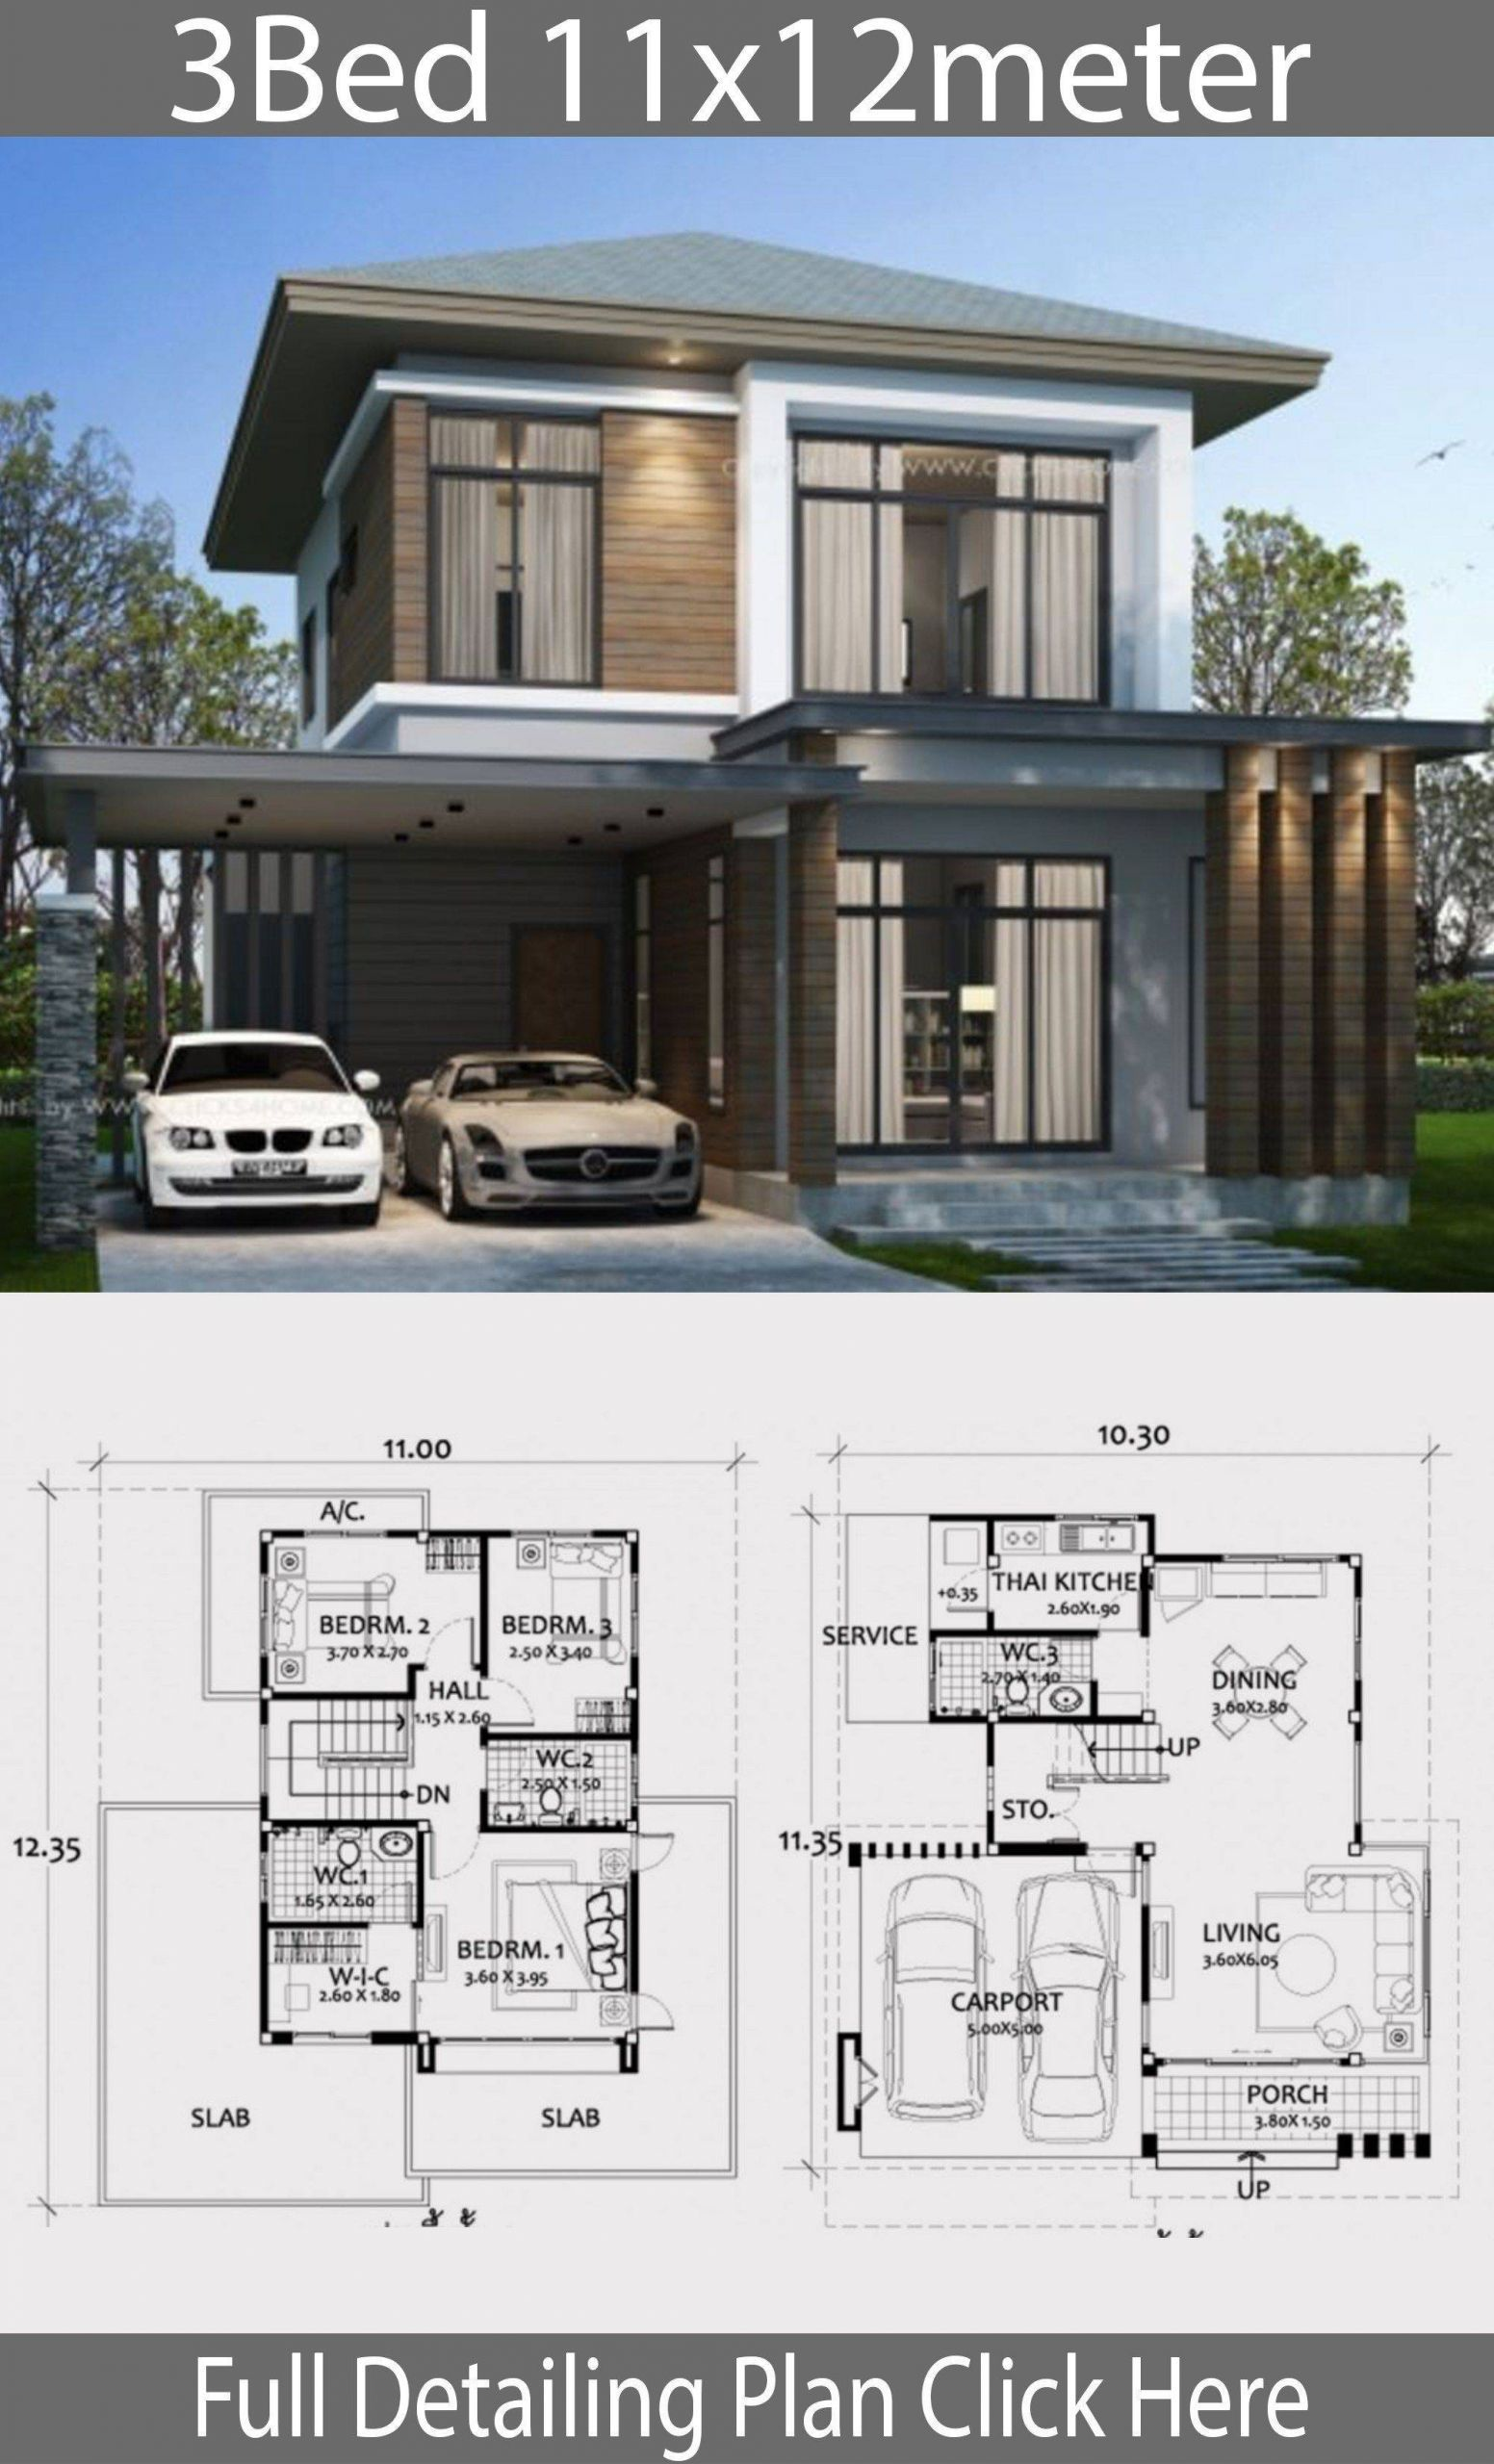 Zen Home Design Homedecor Interiordesign Interior Home Decor Design Homedesign Handm Architectural House Plans House Designs Exterior Home Design Plans